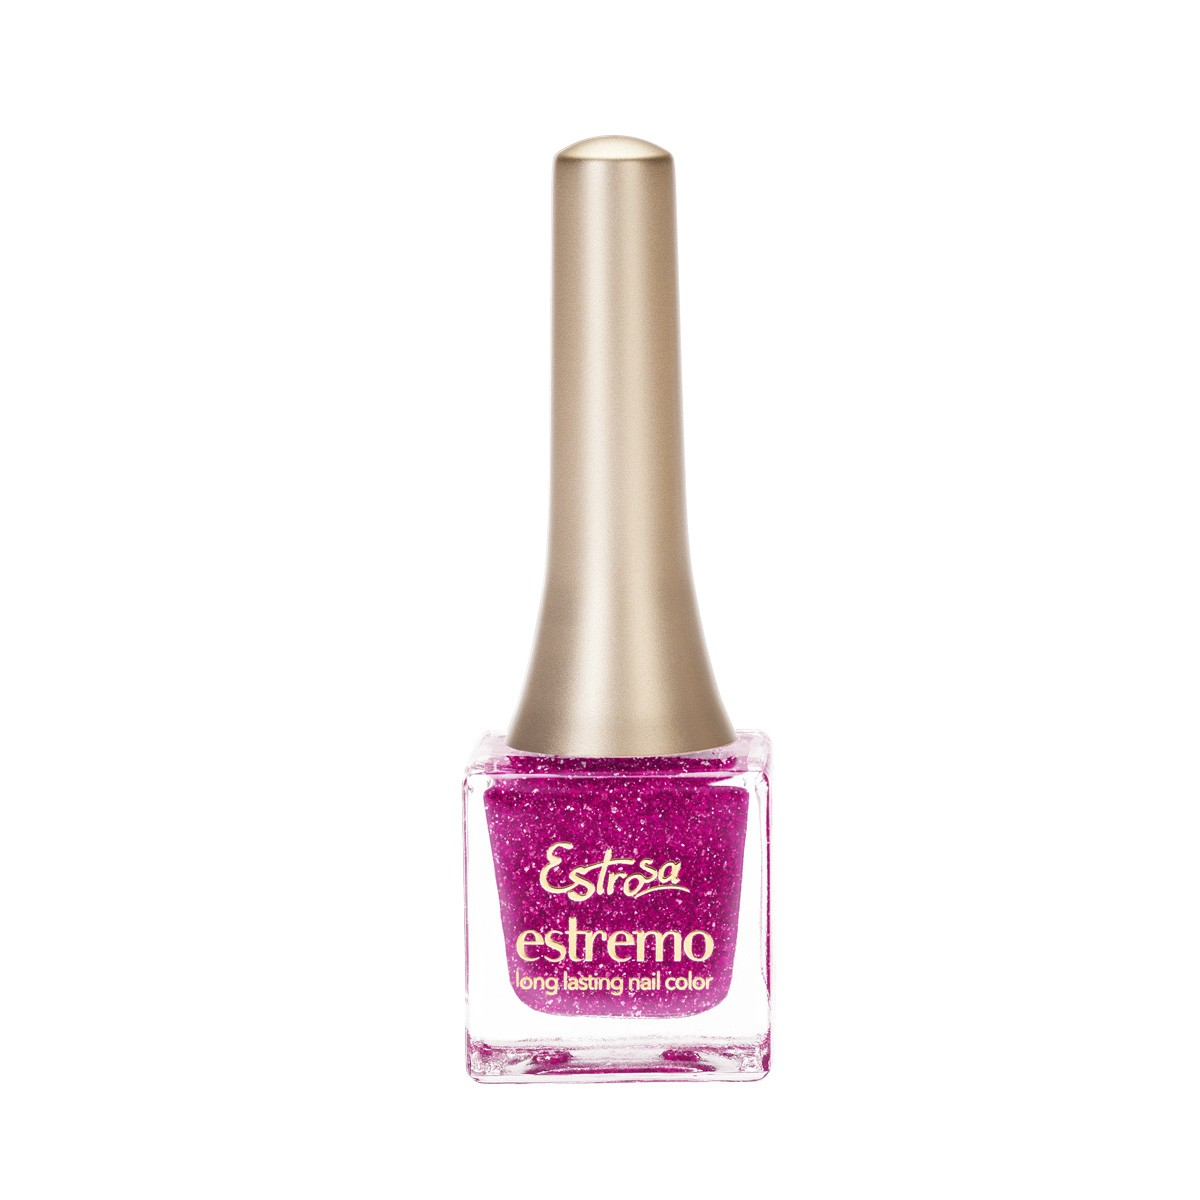 SMALTO LUNGA DURATA ESTREMO - HOLLYWOOD 12ML glitter